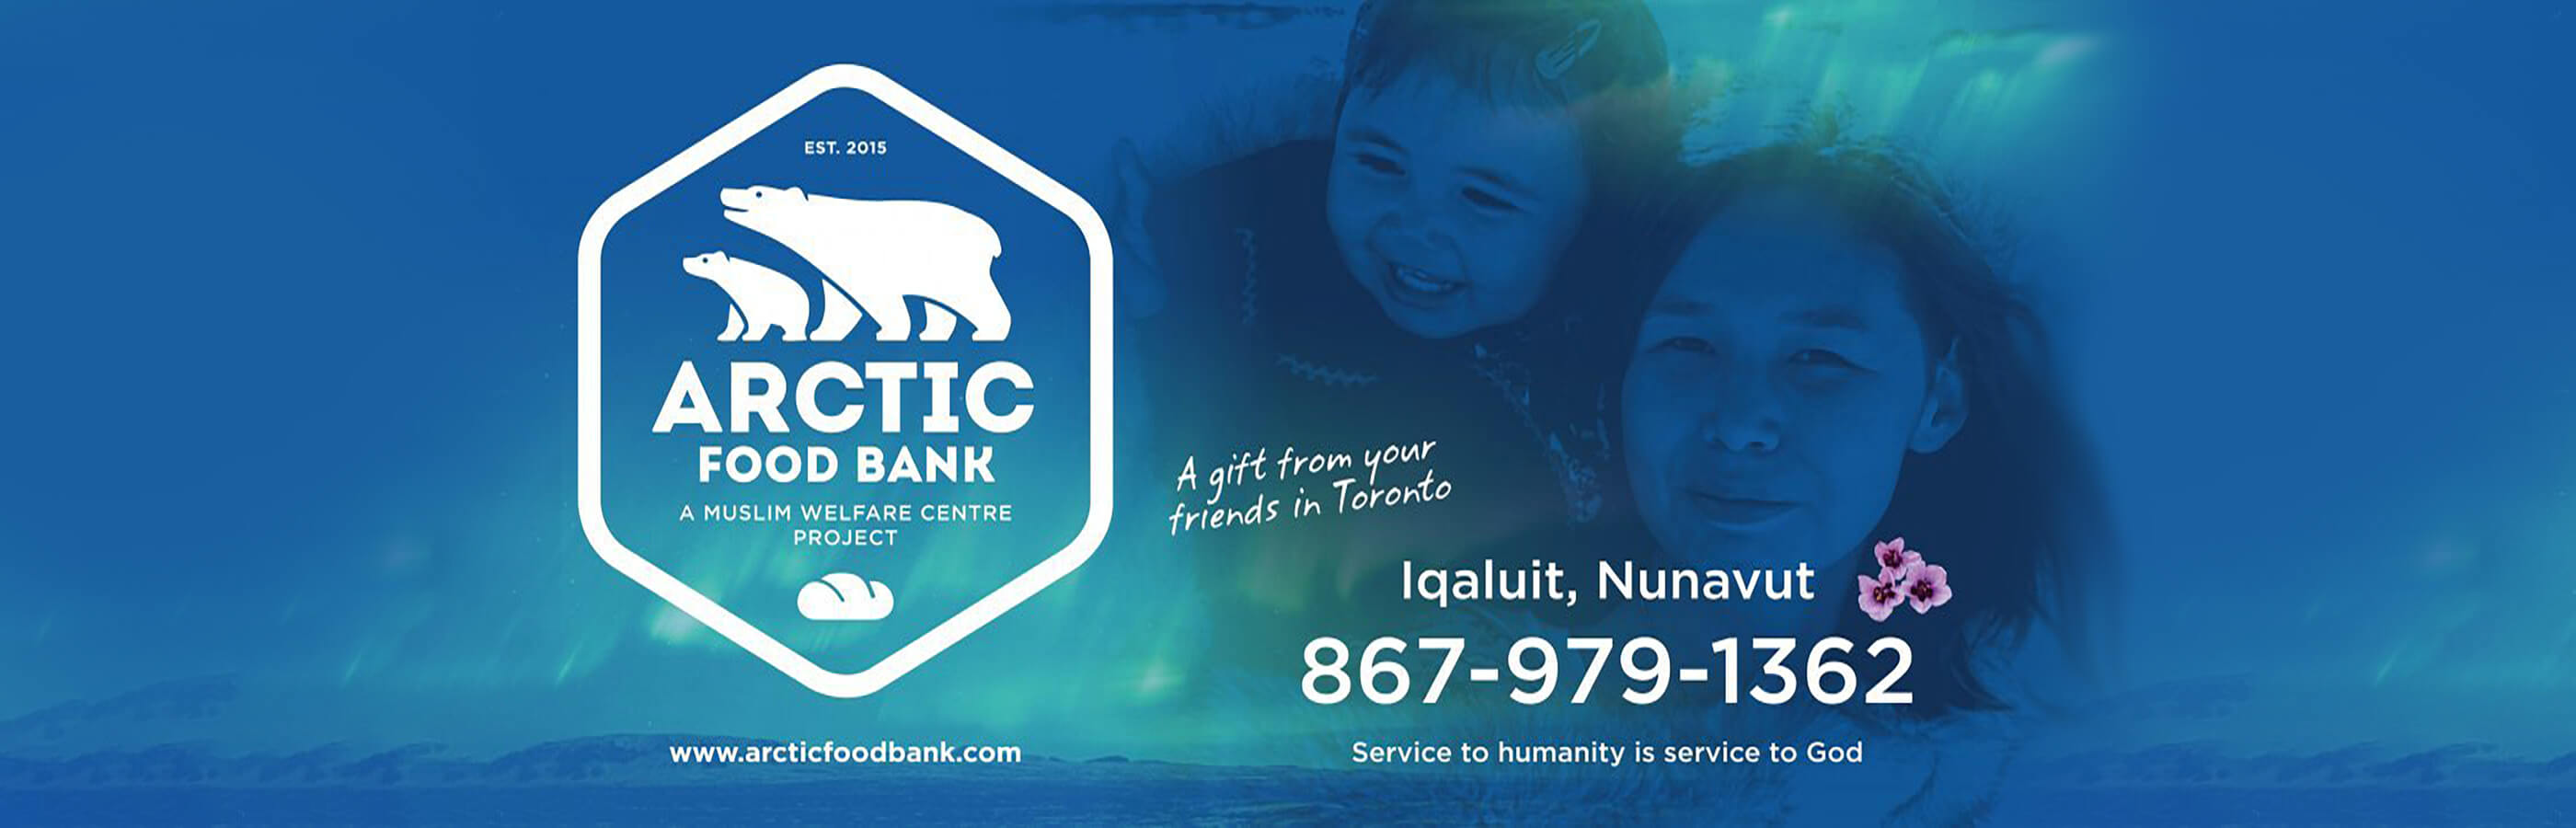 Arctic Food Bank